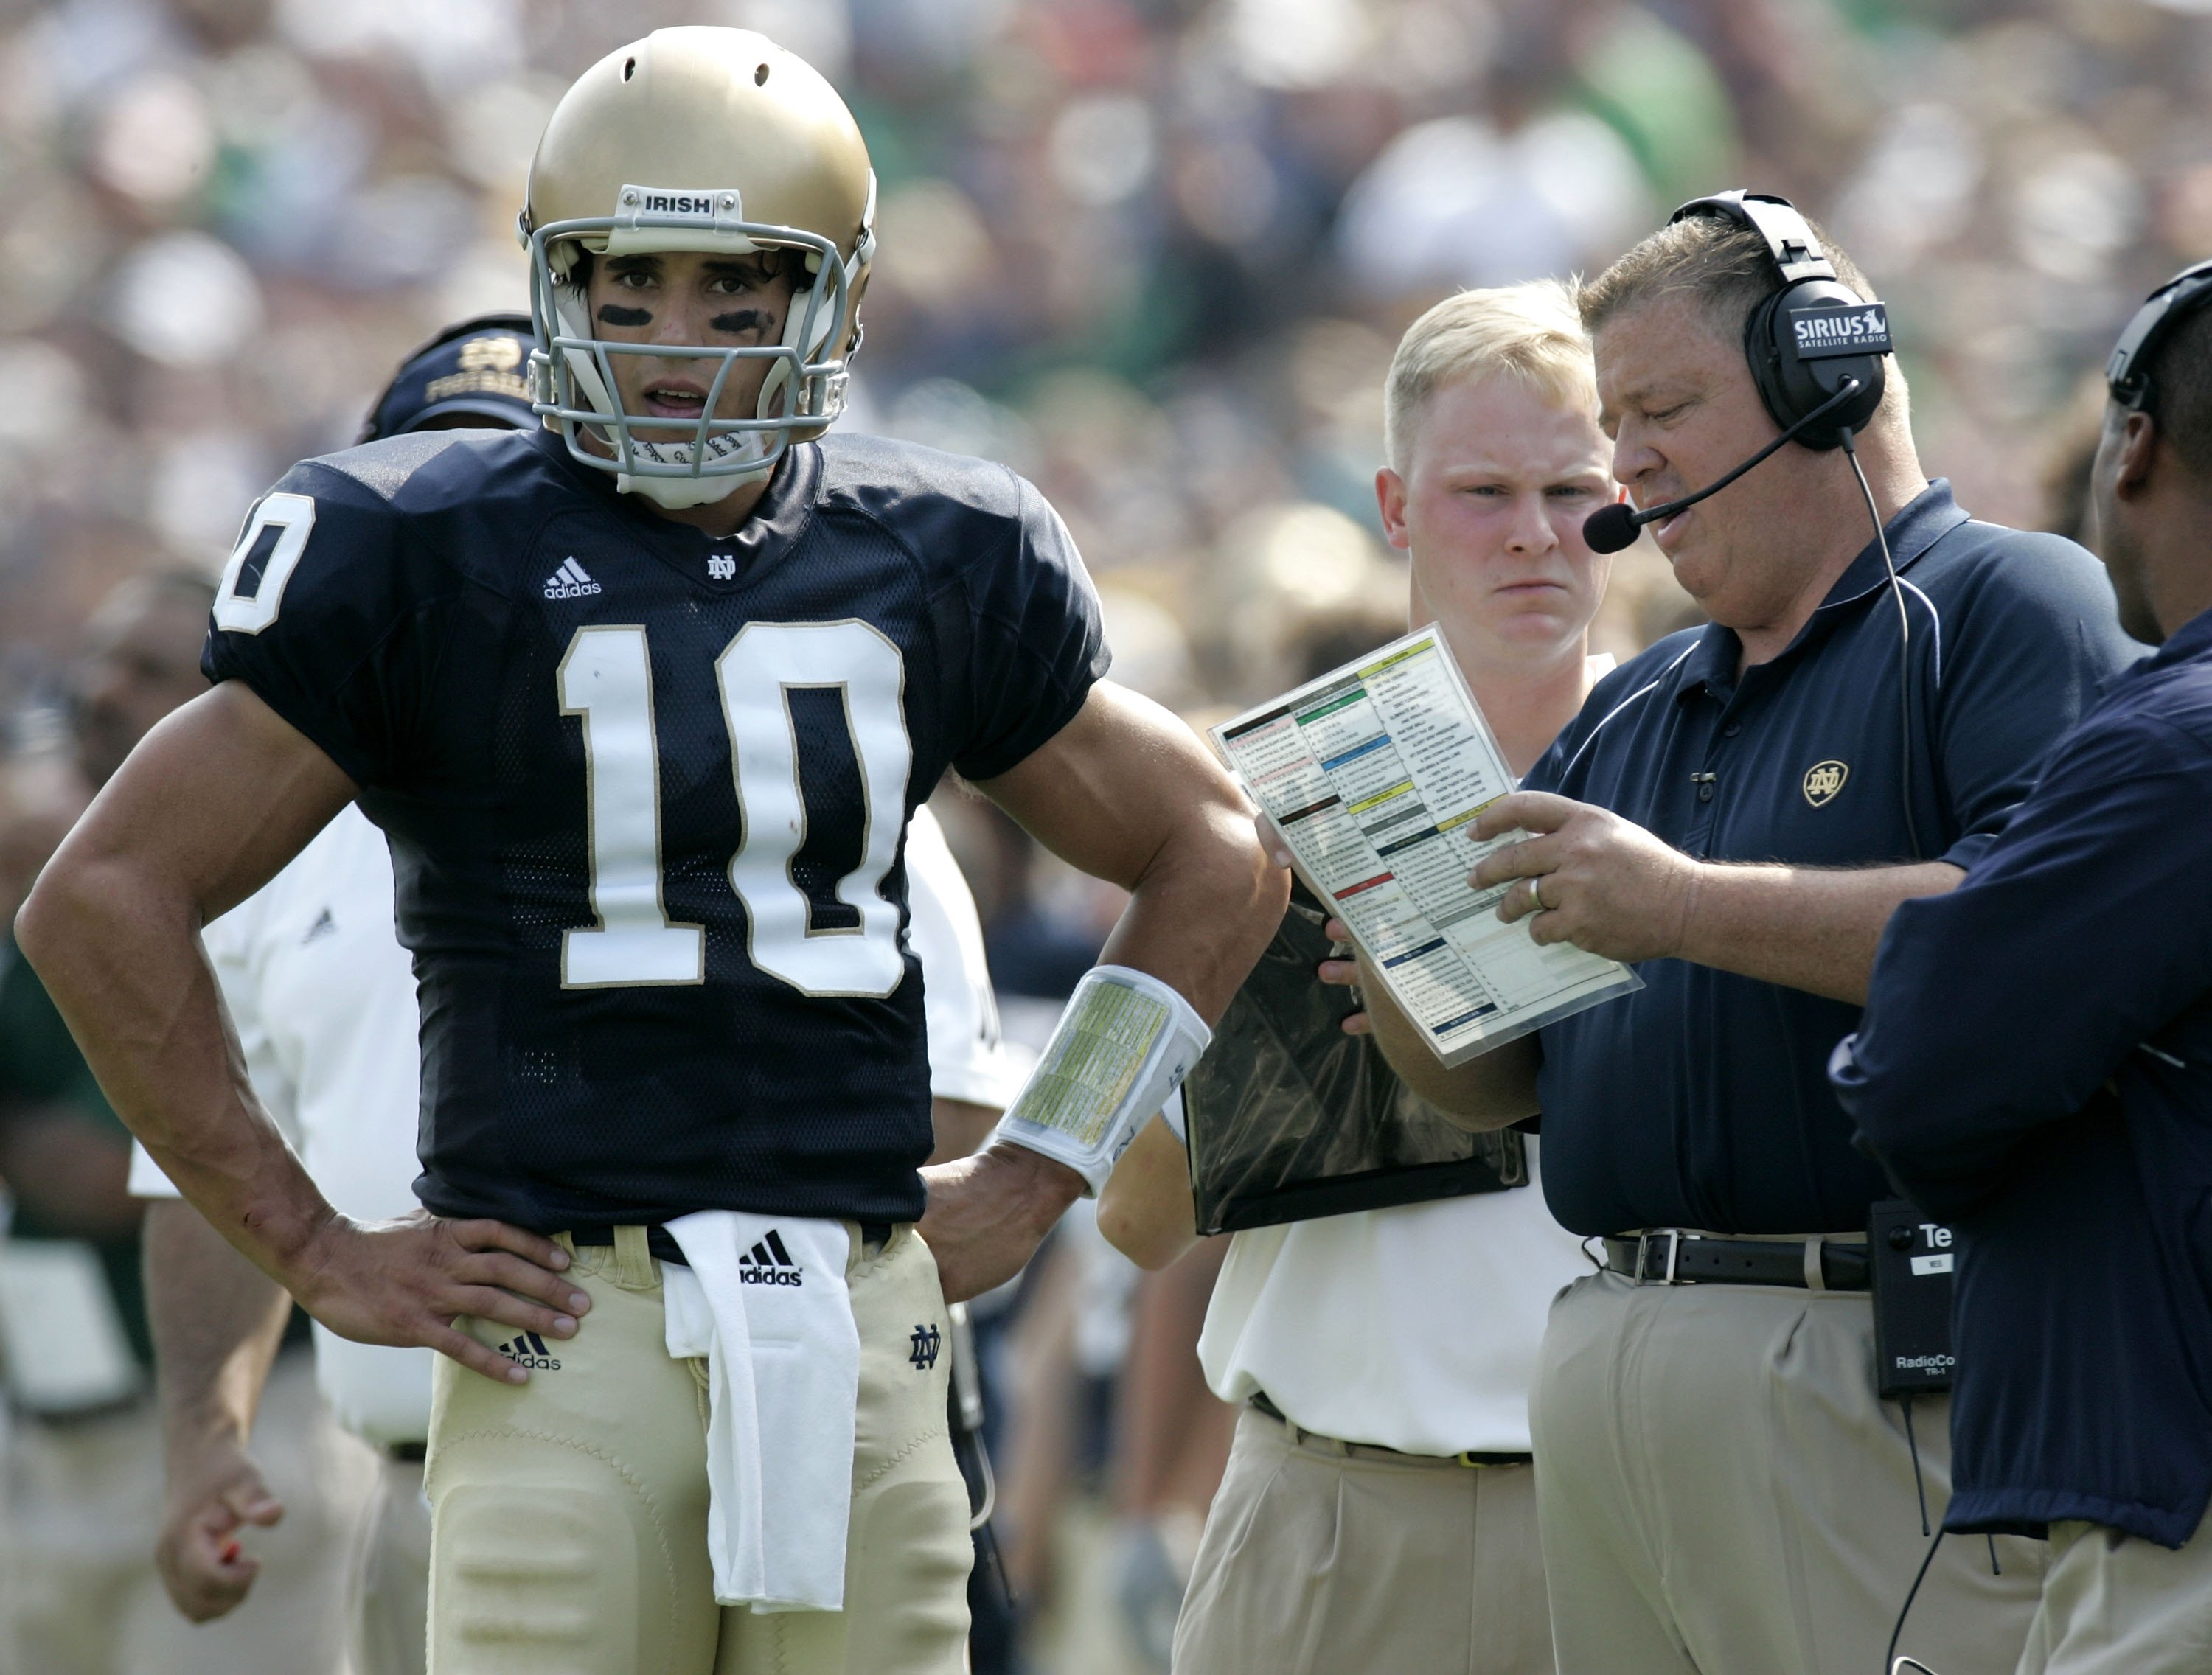 SOUTH BEND, IN - SEPTEMBER 9:  Brady Quinn #10 of the Notre Dame Fighting Irish talks with head coach Charlie Weis during a game against the Penn State Nittany Lions on September 9, 2006 at Notre Dame Stadium in South Bend, Indiana. Notre Dame won the gam